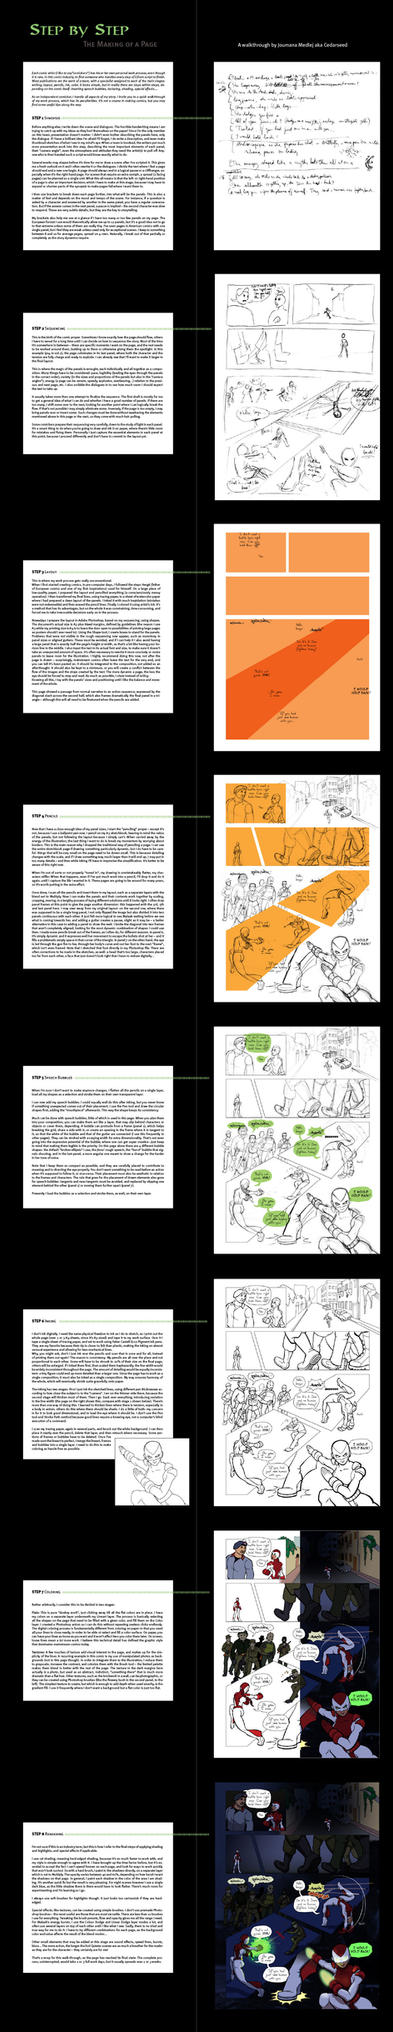 The Making of a Page by Majnouna